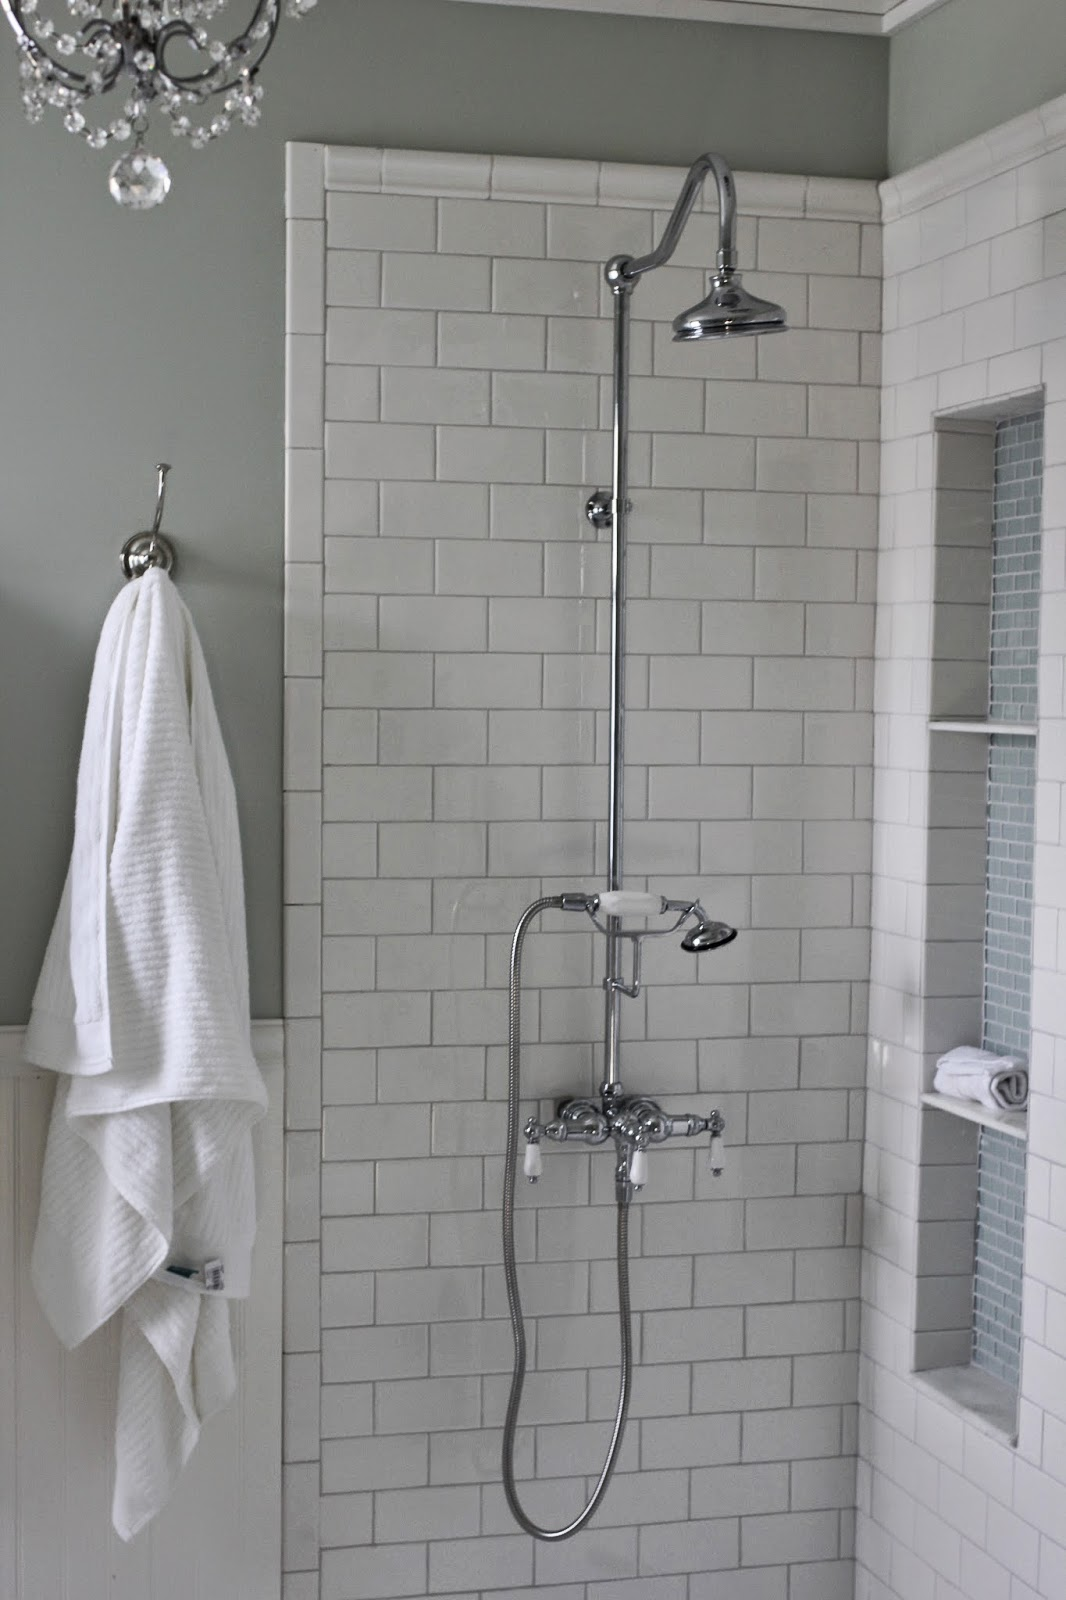 DIY tall shower niche tutorial with exposed shower, mosaic glass and white subway tile-www.goldenboysandme.com